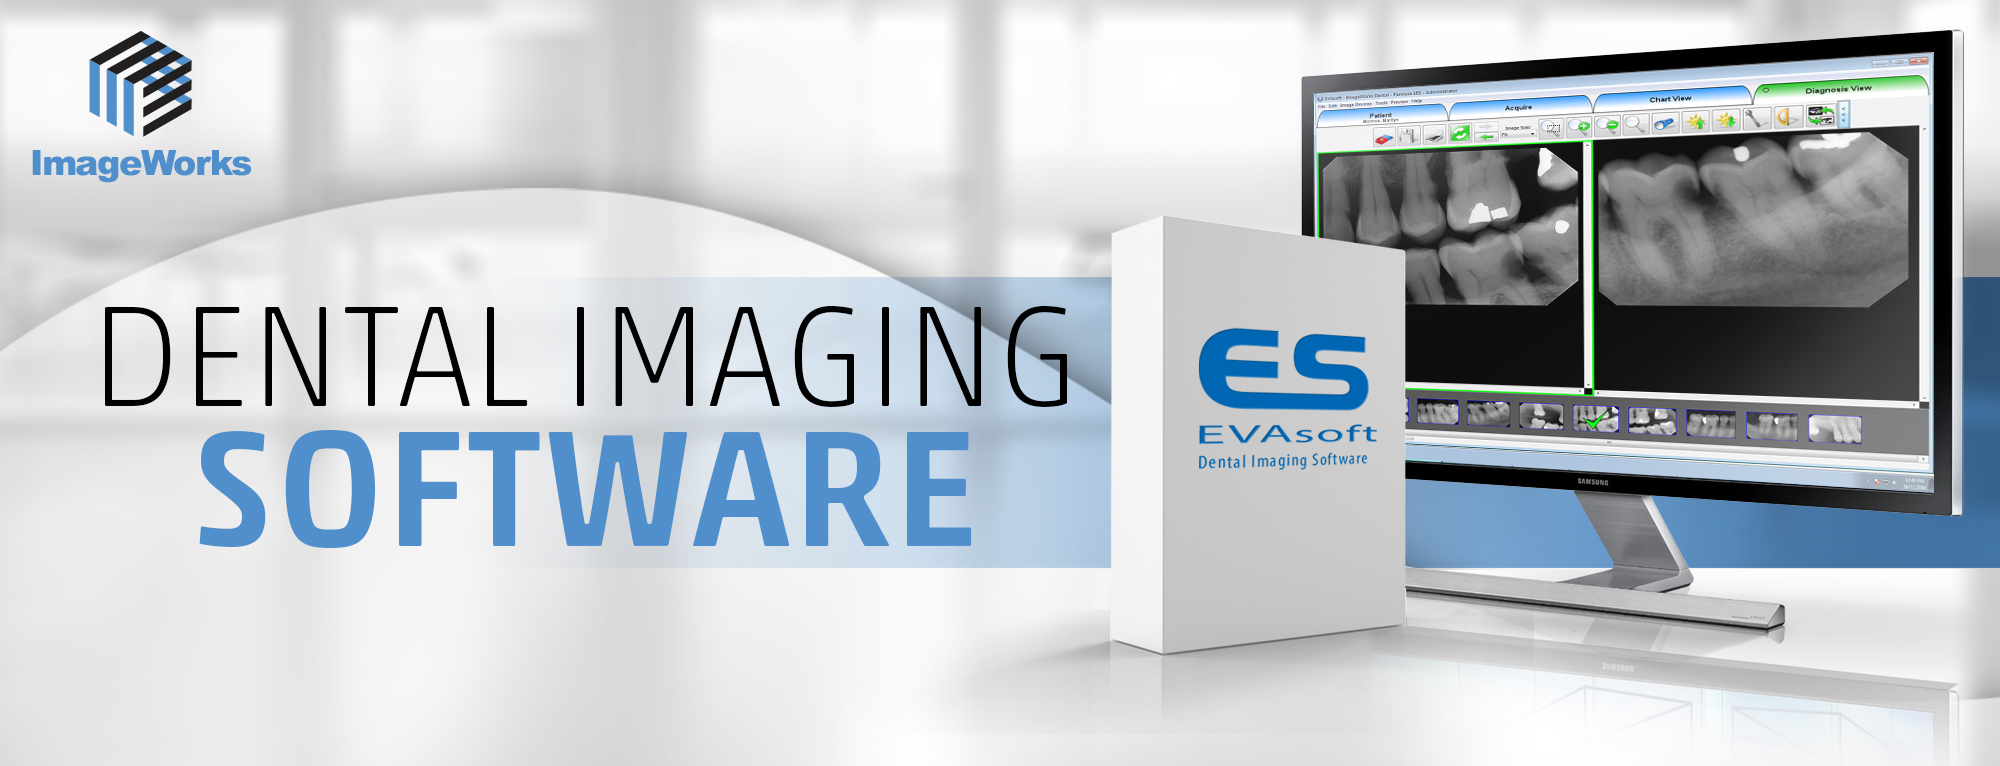 EvaSoft, Dental Imaging Software